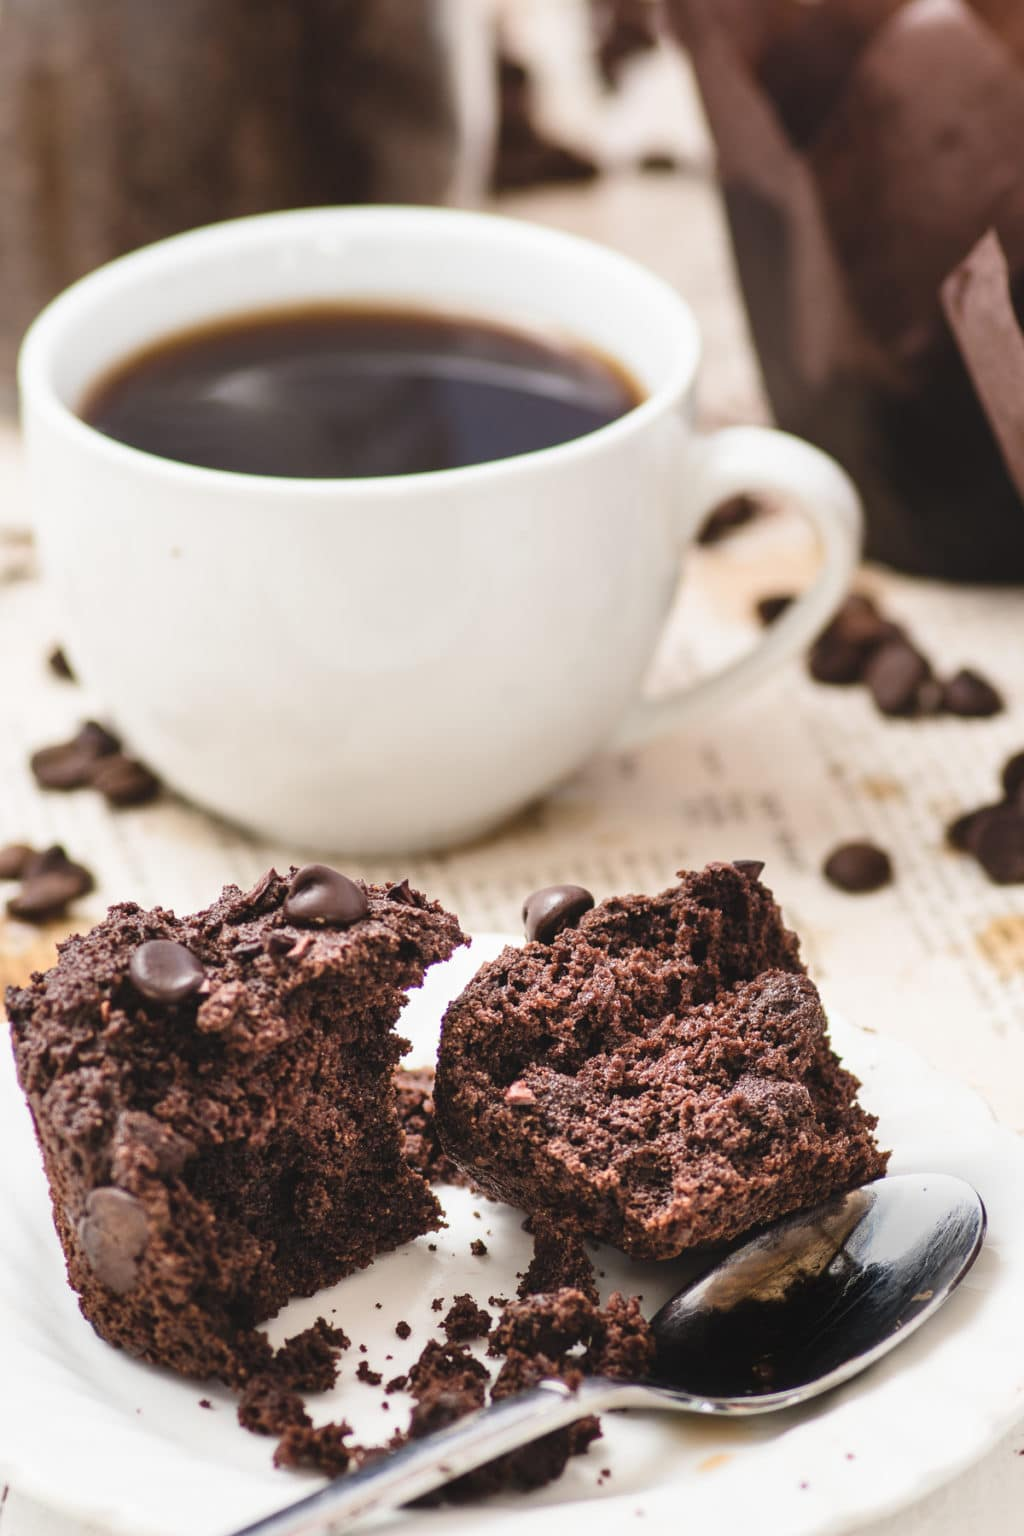 Cup of hot black coffee and dark chocolate muffin